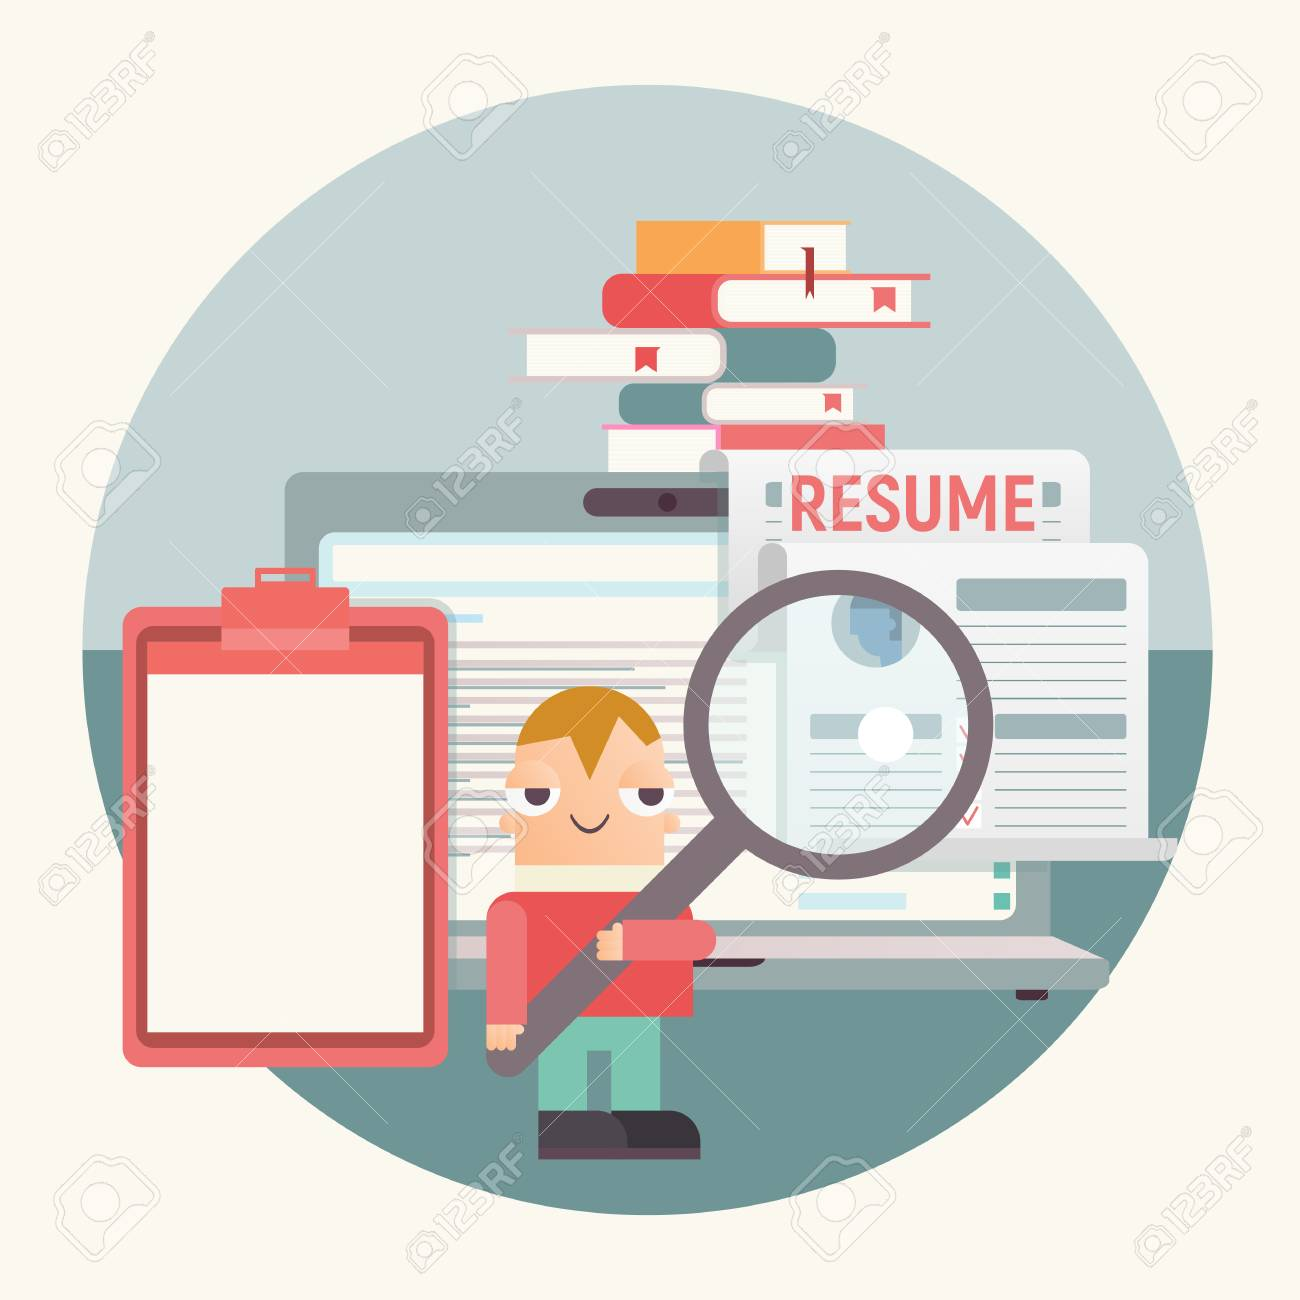 Hiring Job Interview And Recruitment Concept Cartoon Hr Manager Royalty Free Cliparts Vectors And Stock Illustration Image 123111674